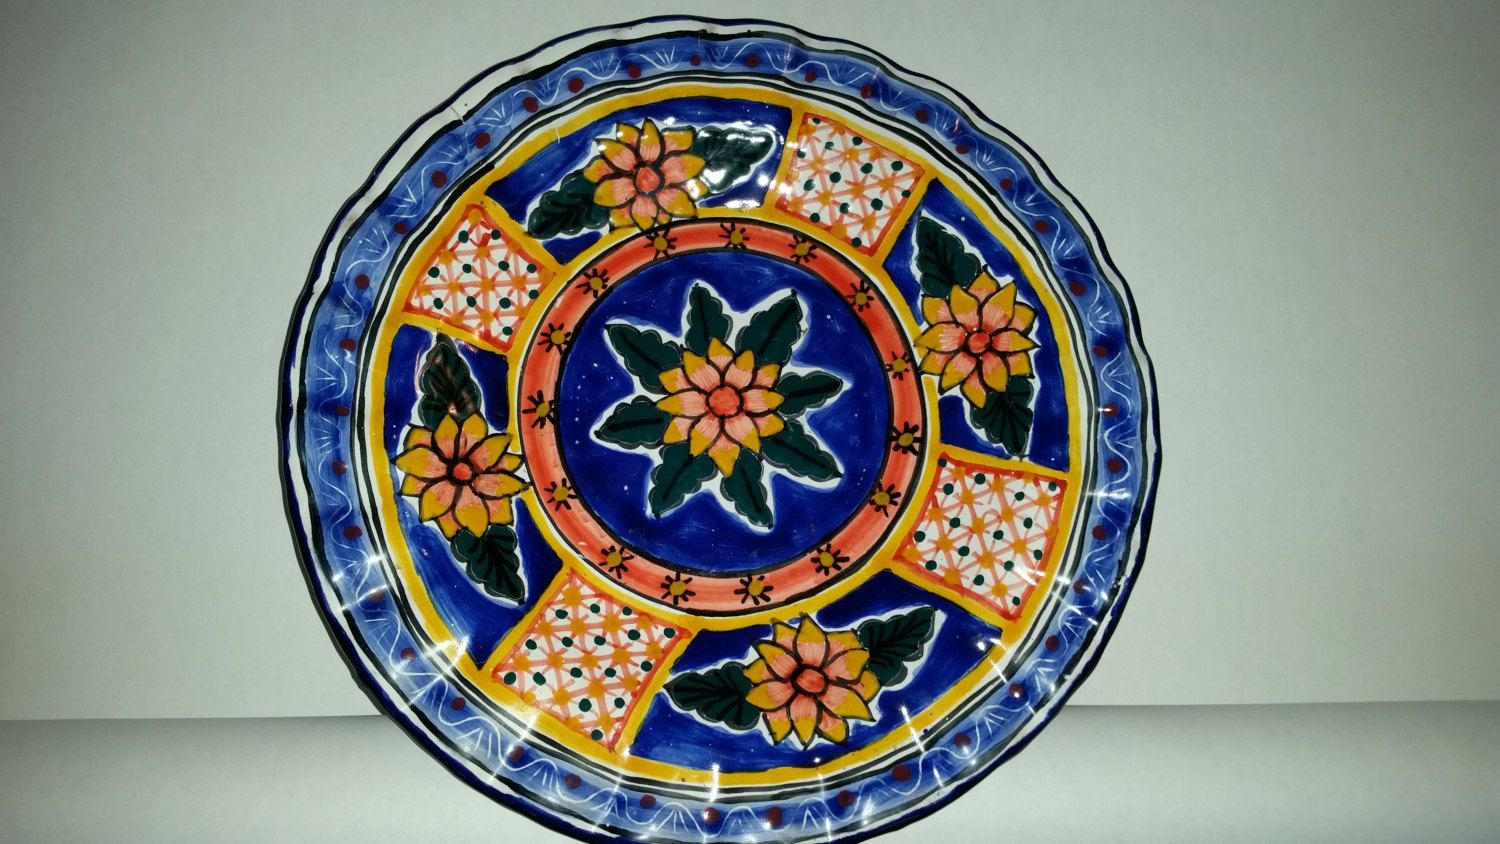 Talavera Plate Vintage Mexican Ceramic Decorative Wall Hanging Platter Floral Design Made in Mexico 10  & Talavera Plate Vintage Mexican Ceramic Decorative Wall Hanging ...